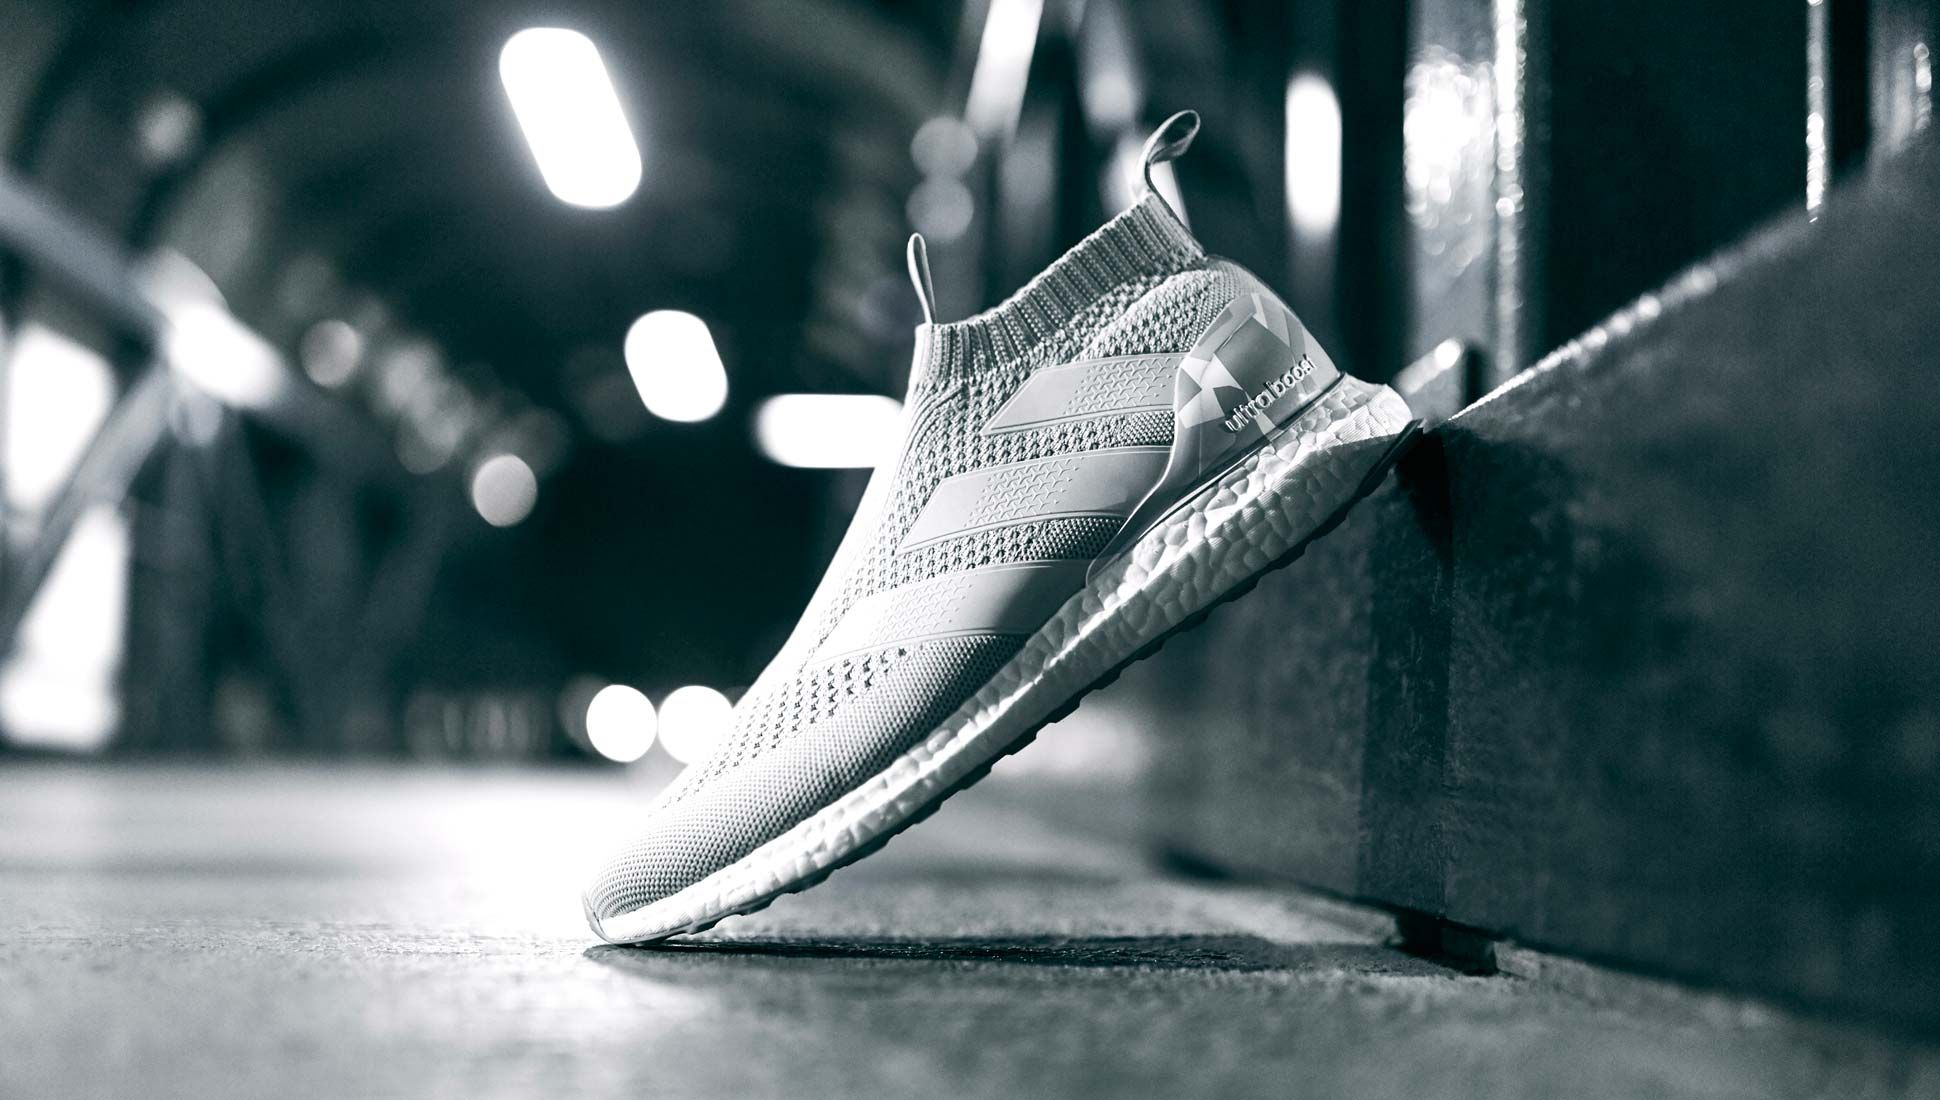 aedc4e969d8 adidas ACE 16+ Purecontrol UltraBOOST